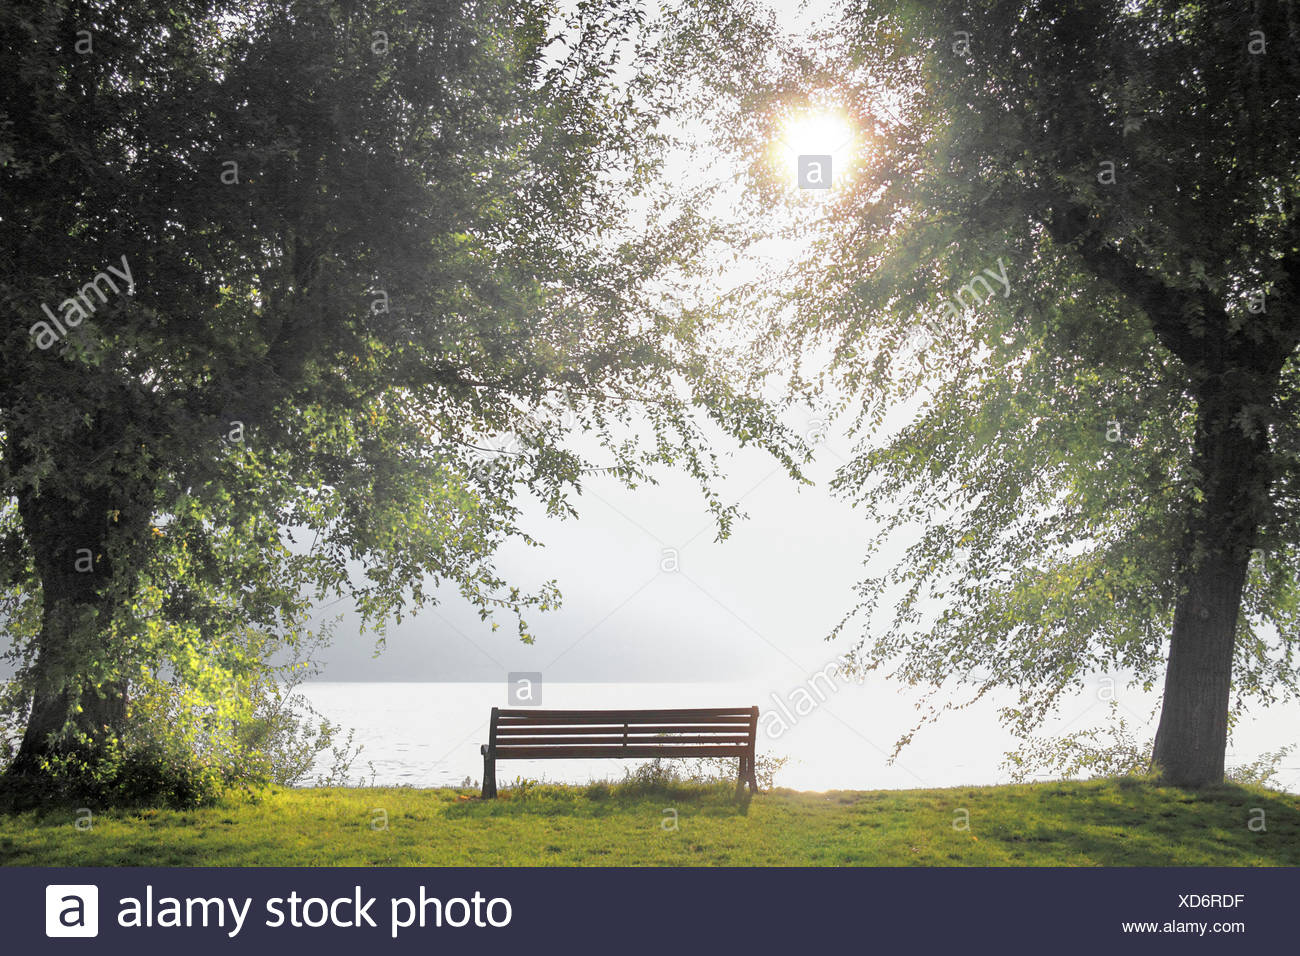 park bench at the lakefront in backlight, Italy, Lake Garda - Stock Image